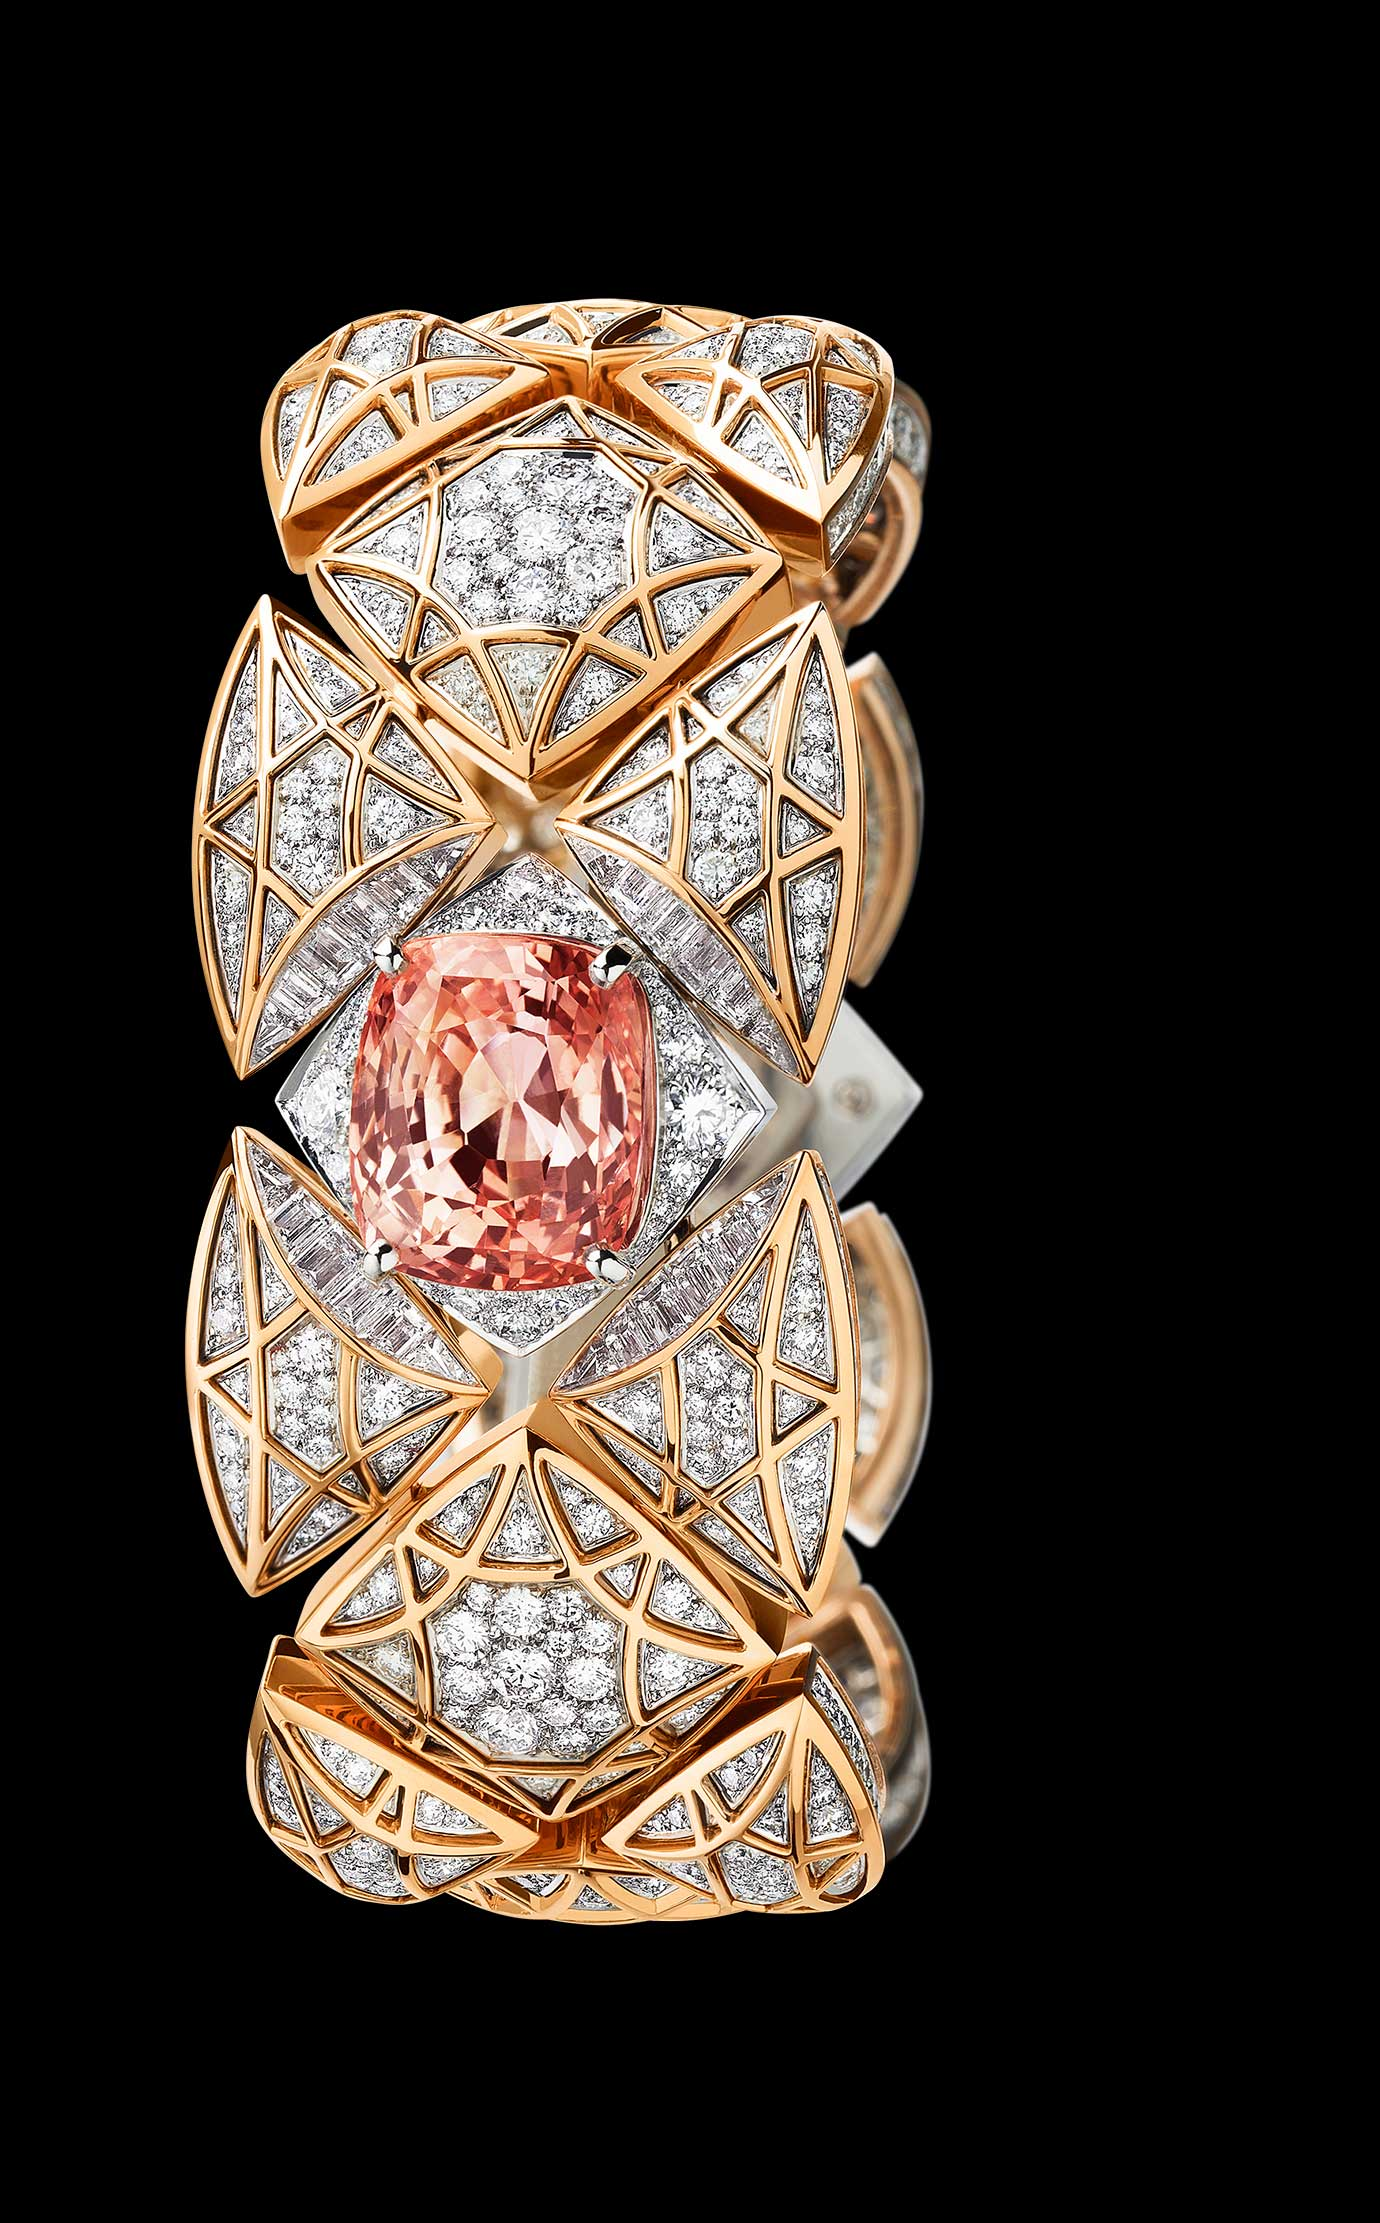 Les Eternelles de CHANEL. Secret cuff watch in white and pink gold. 17.22 carat orange-pink Padparadscha sapphire. - Front - Enlarged view